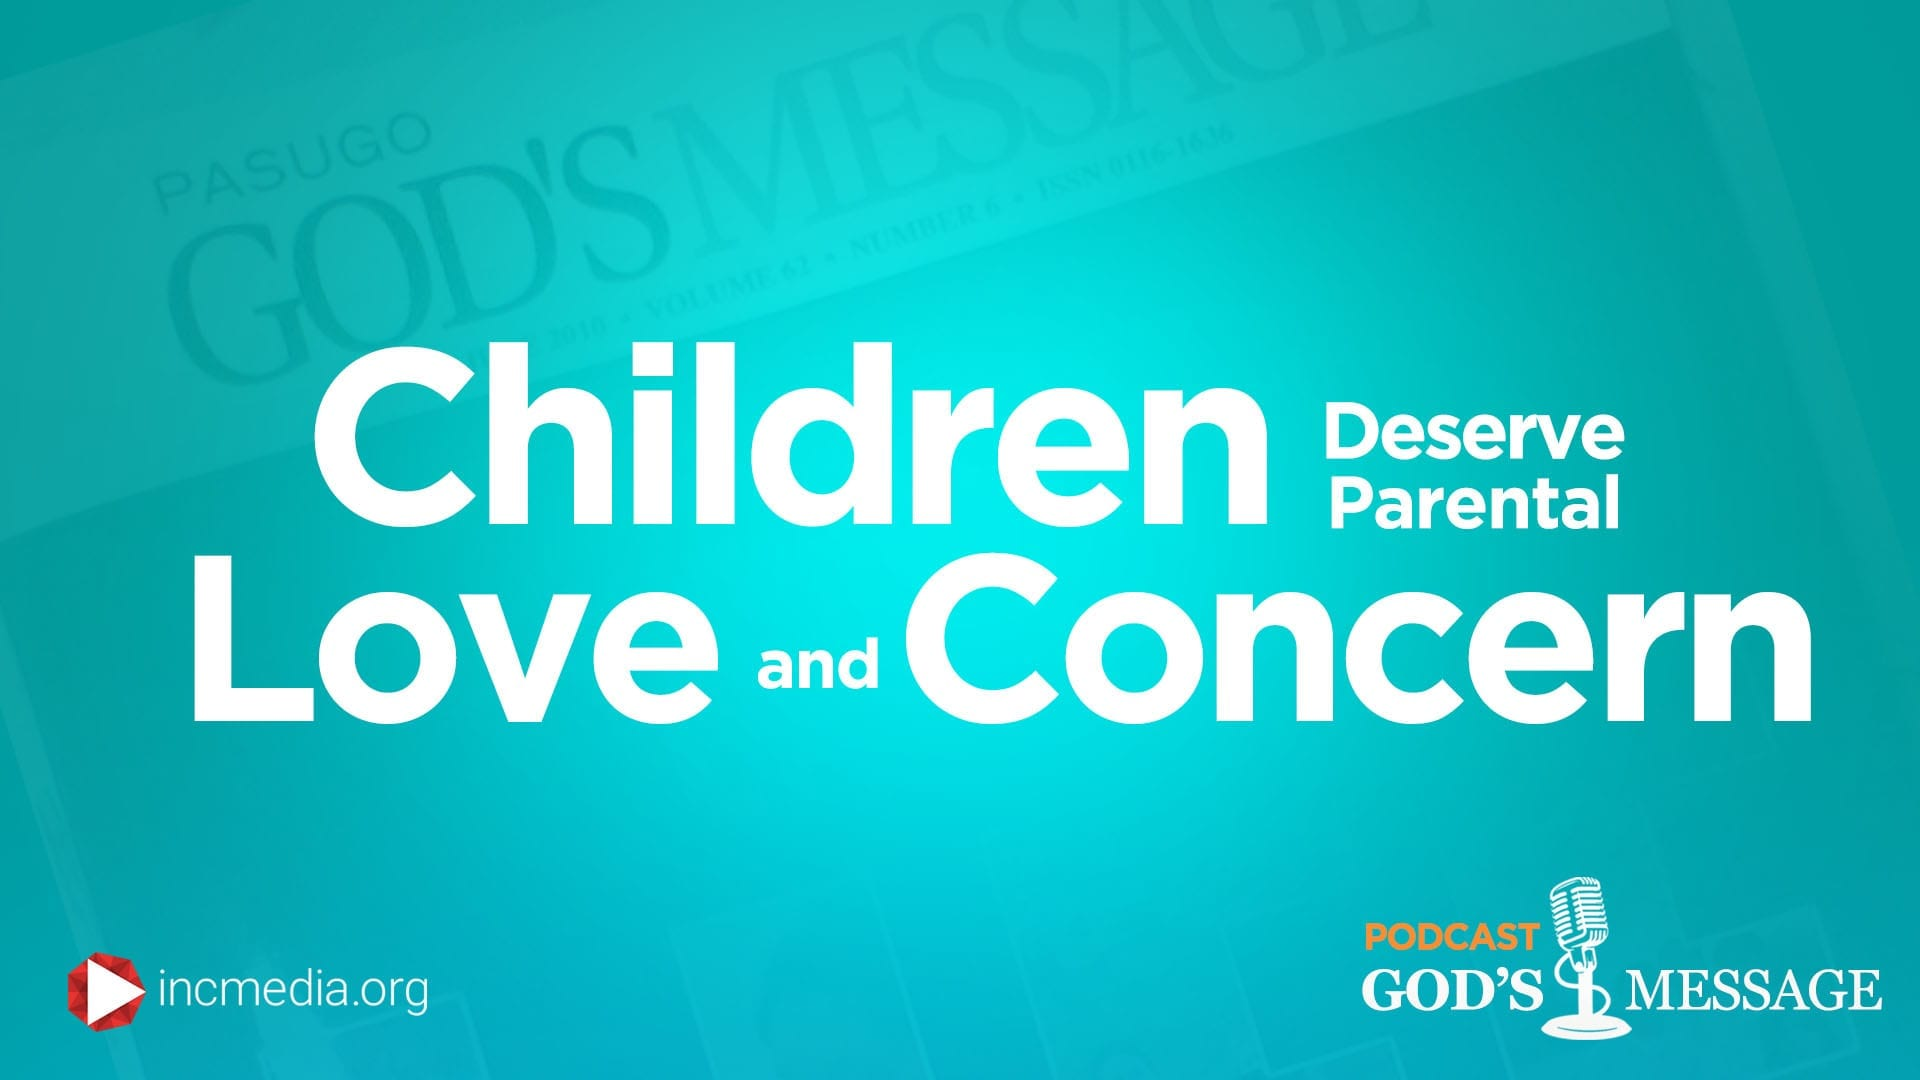 Children Deserve Parental Love and Concern